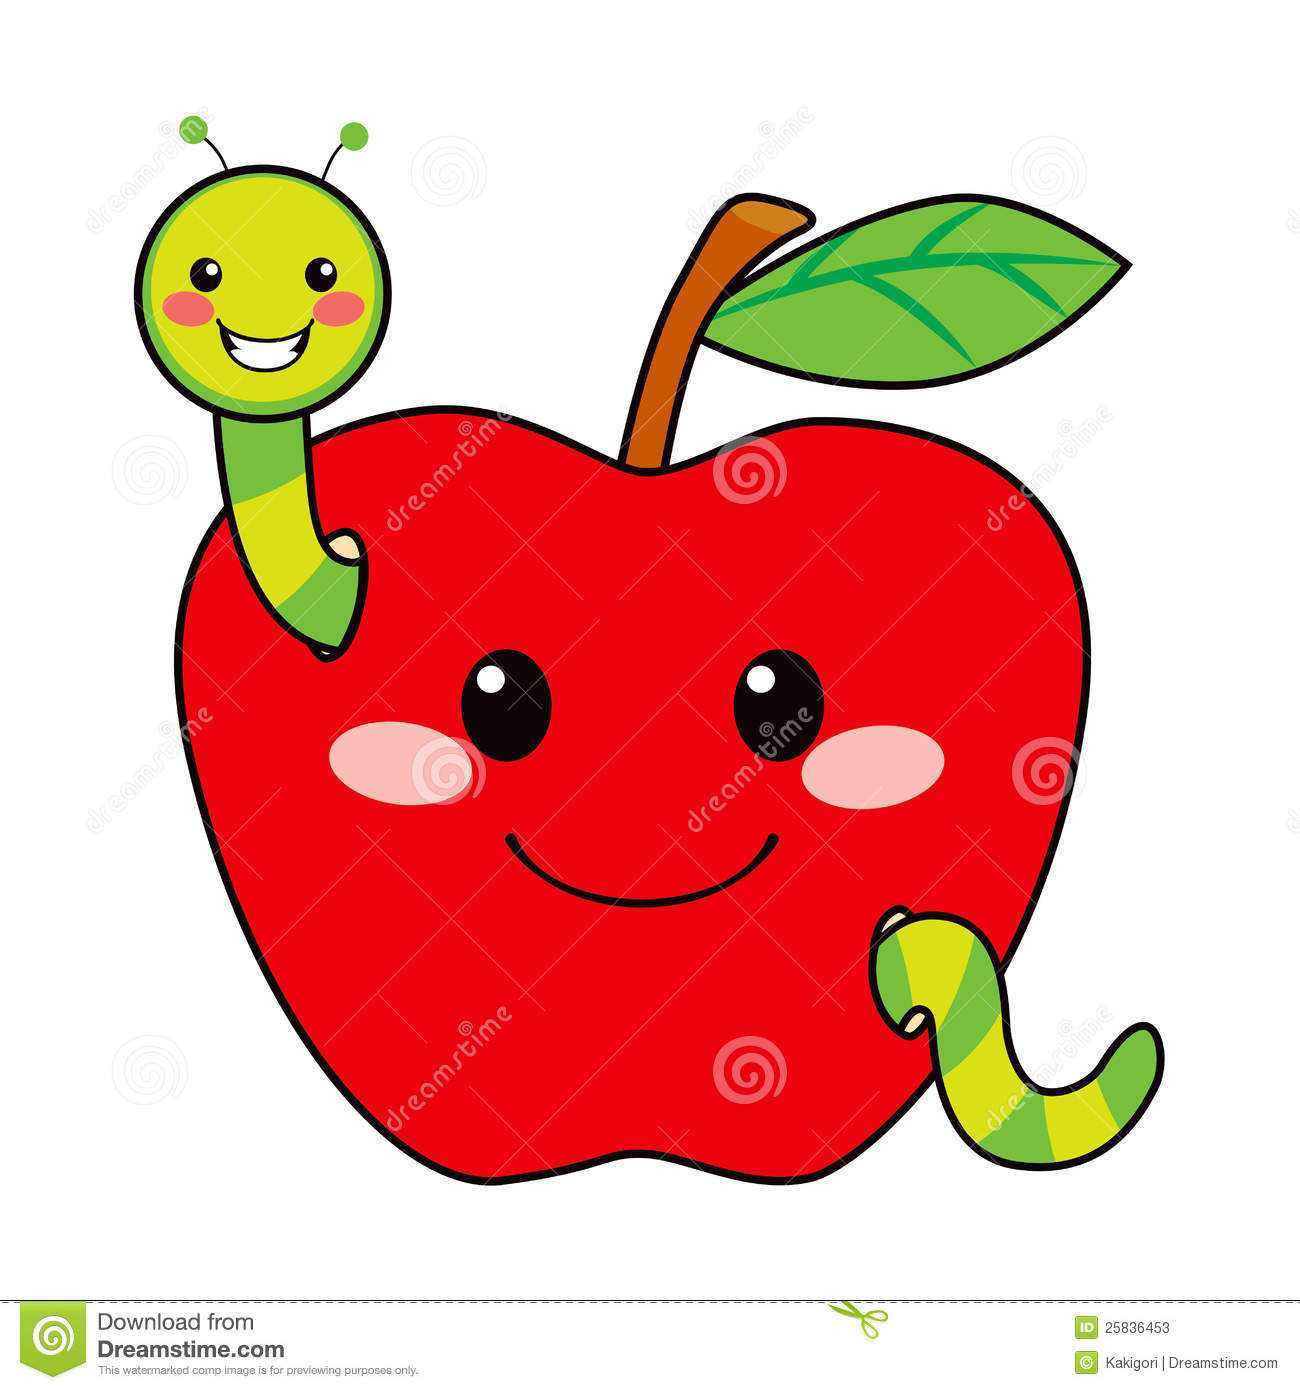 Cute green worm happy in love with sweet red apple.